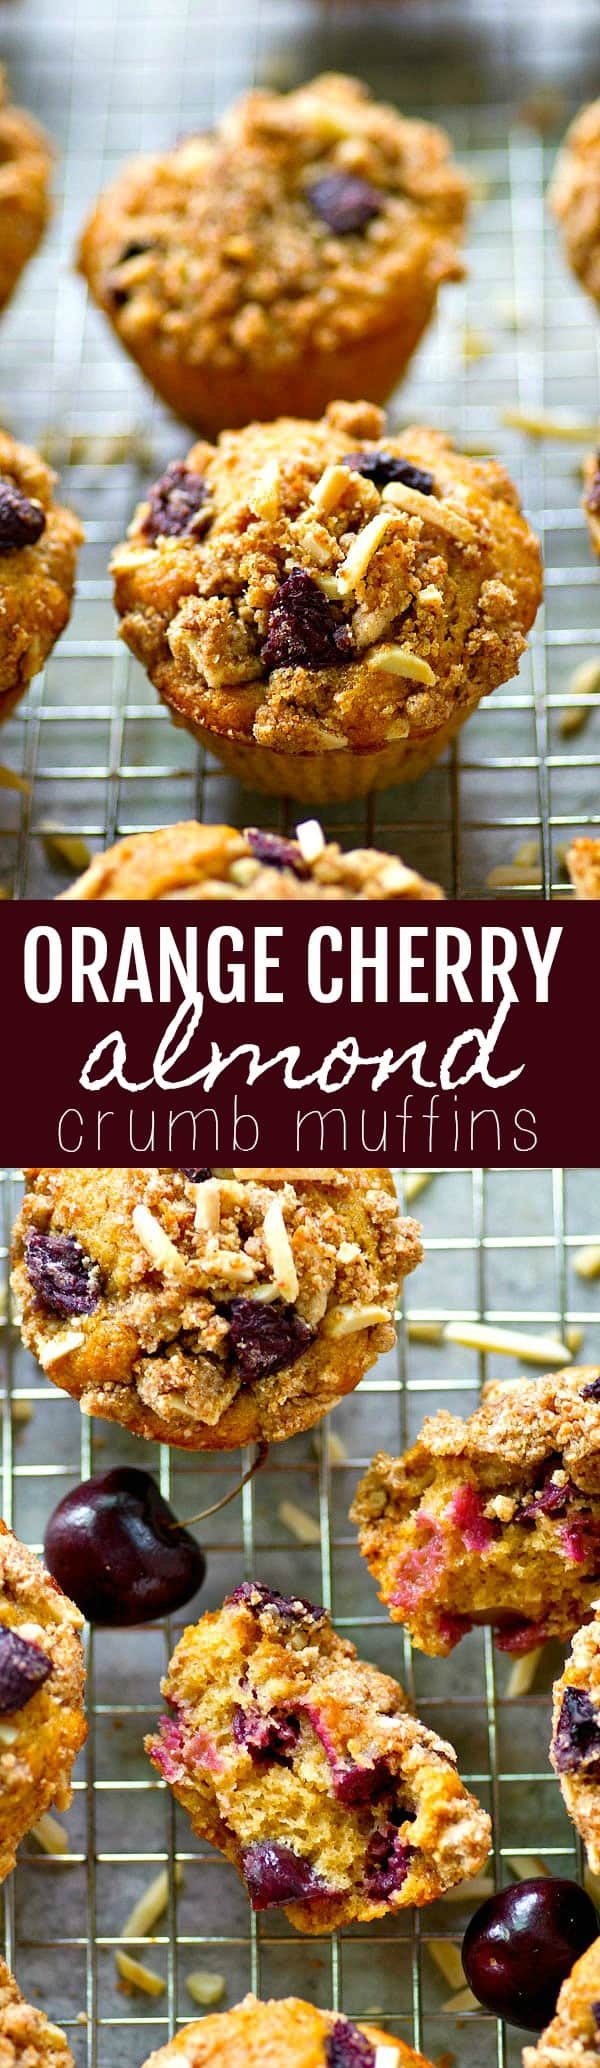 Soft, melt-in-your-mouth orange cherry almond crumb muffins are packed with juicy cherries, tons of citrus flavor, and topped off with an irresistible almond streusel topping.